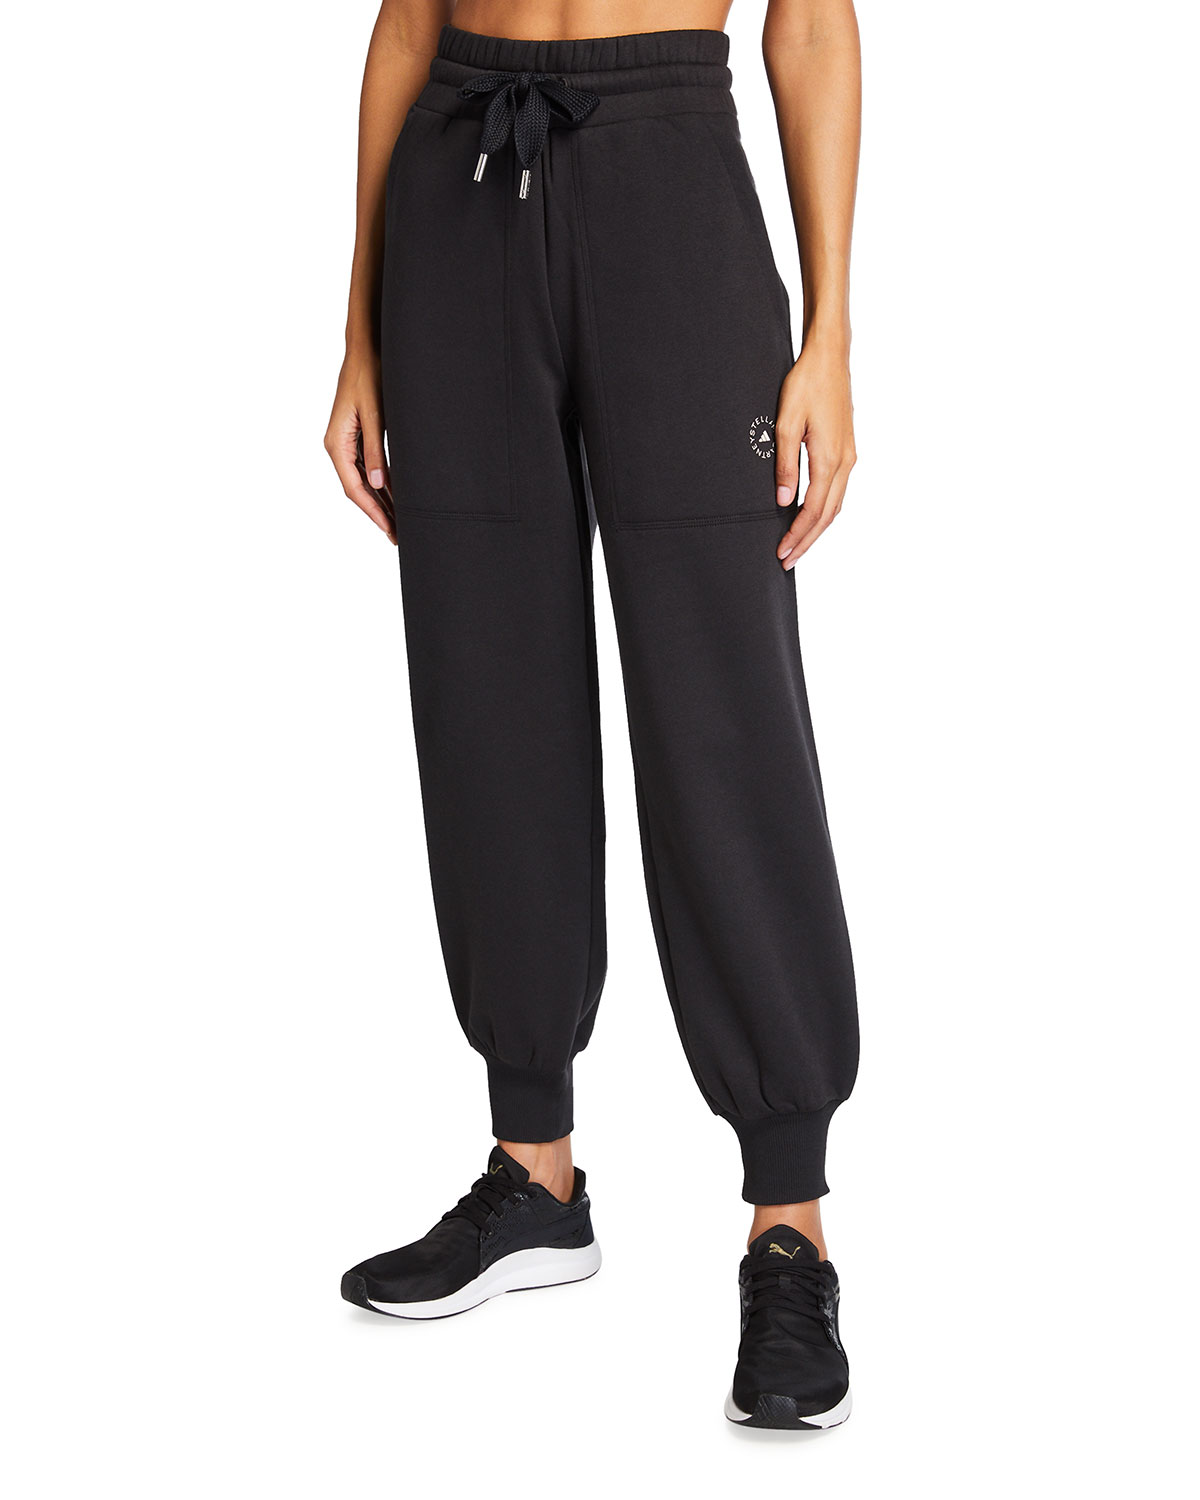 French-Terry Sweatpants